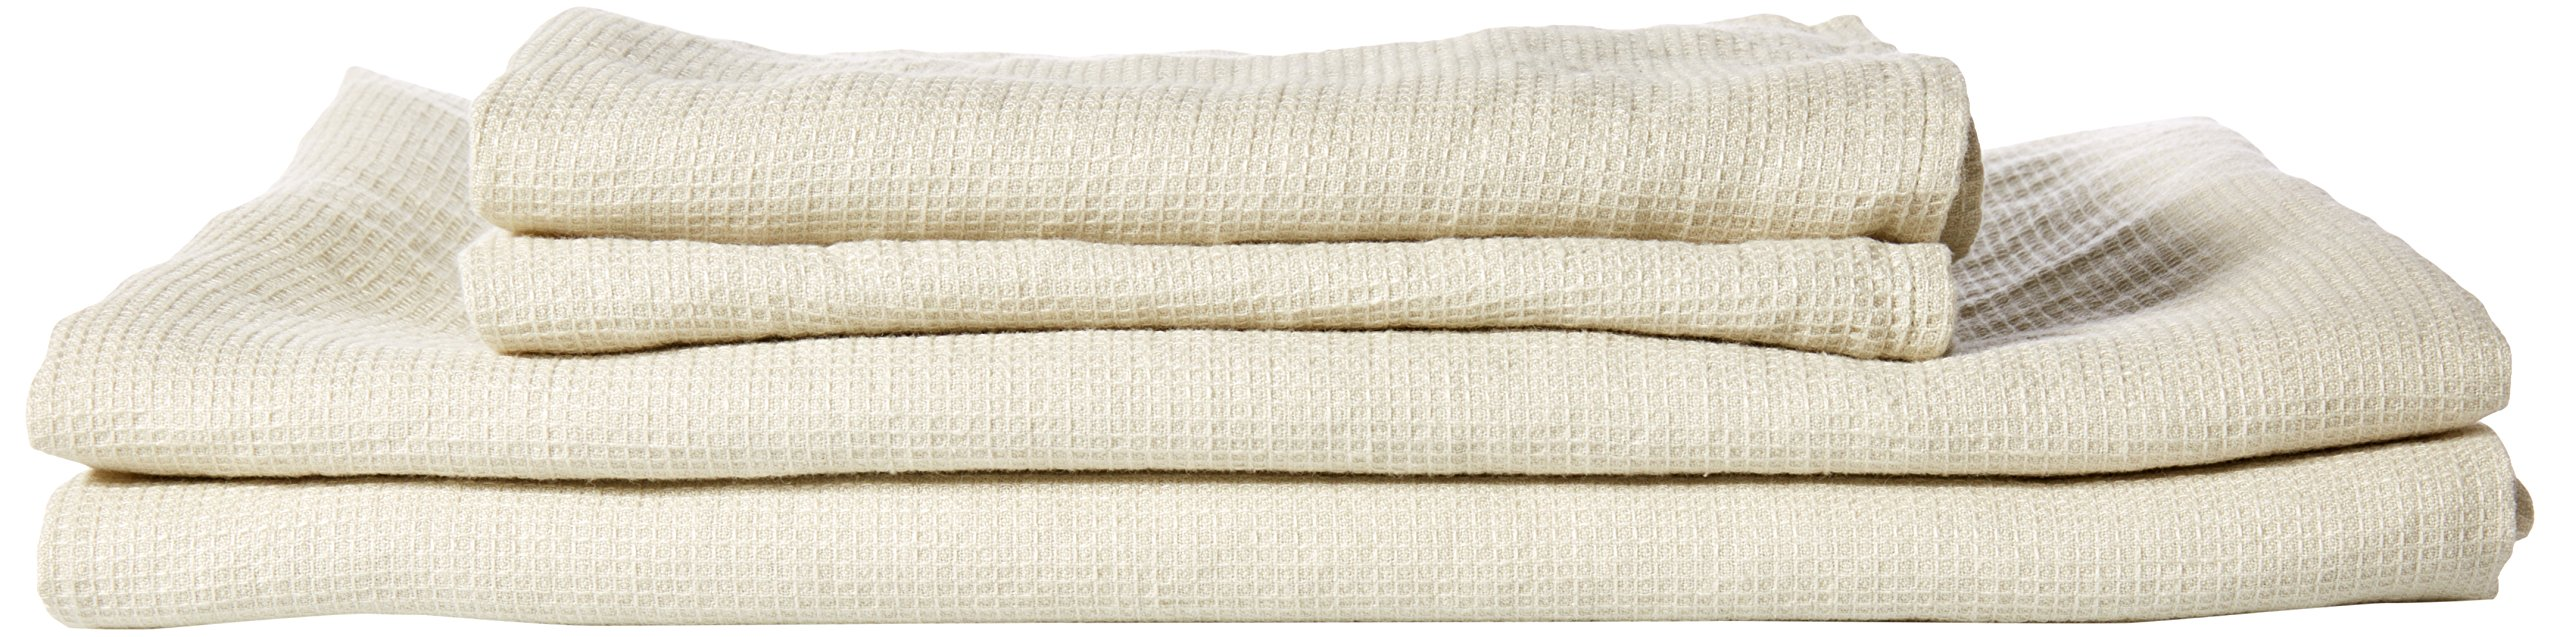 LinenMe 05511 Waffle Washed Linen Bath and Hand Towel Set, Aloe Green